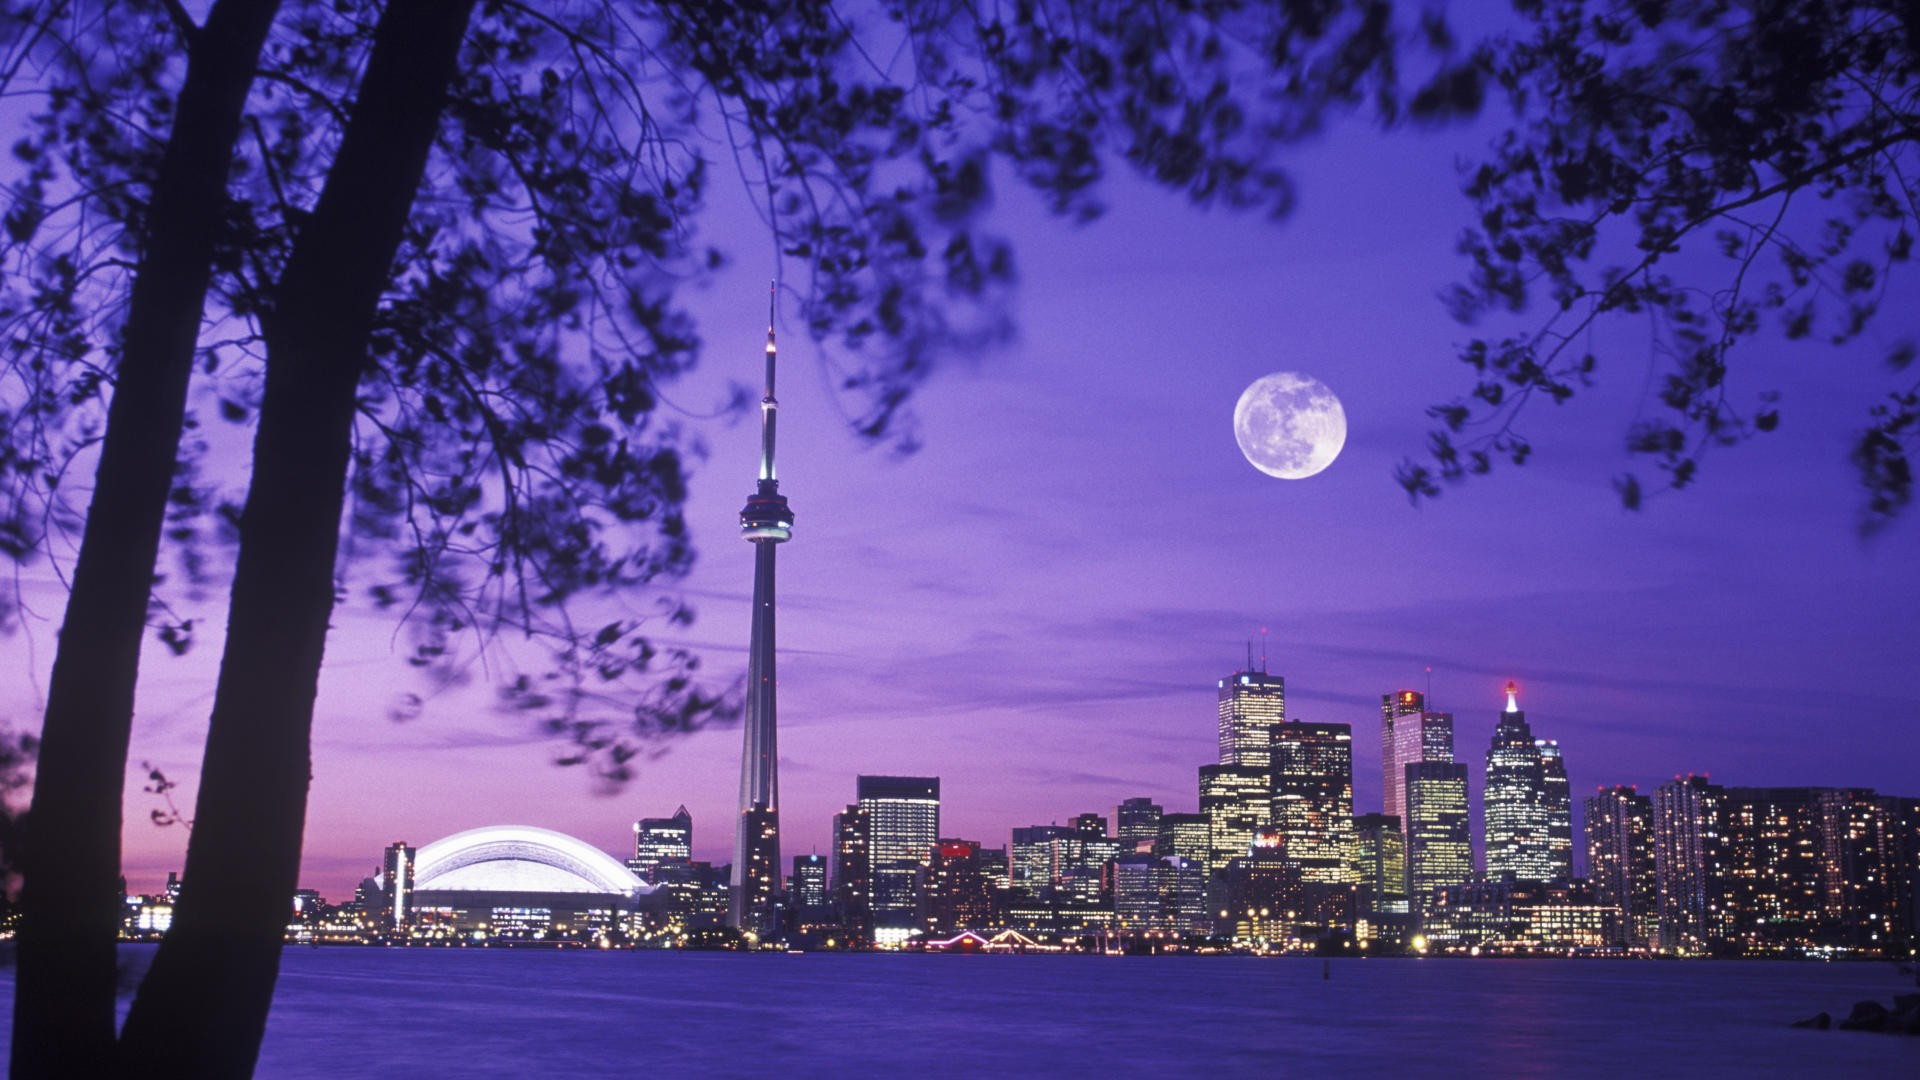 hd-wallpaper-Toronto-Skyline-Night-Moon-Scenery-Canada